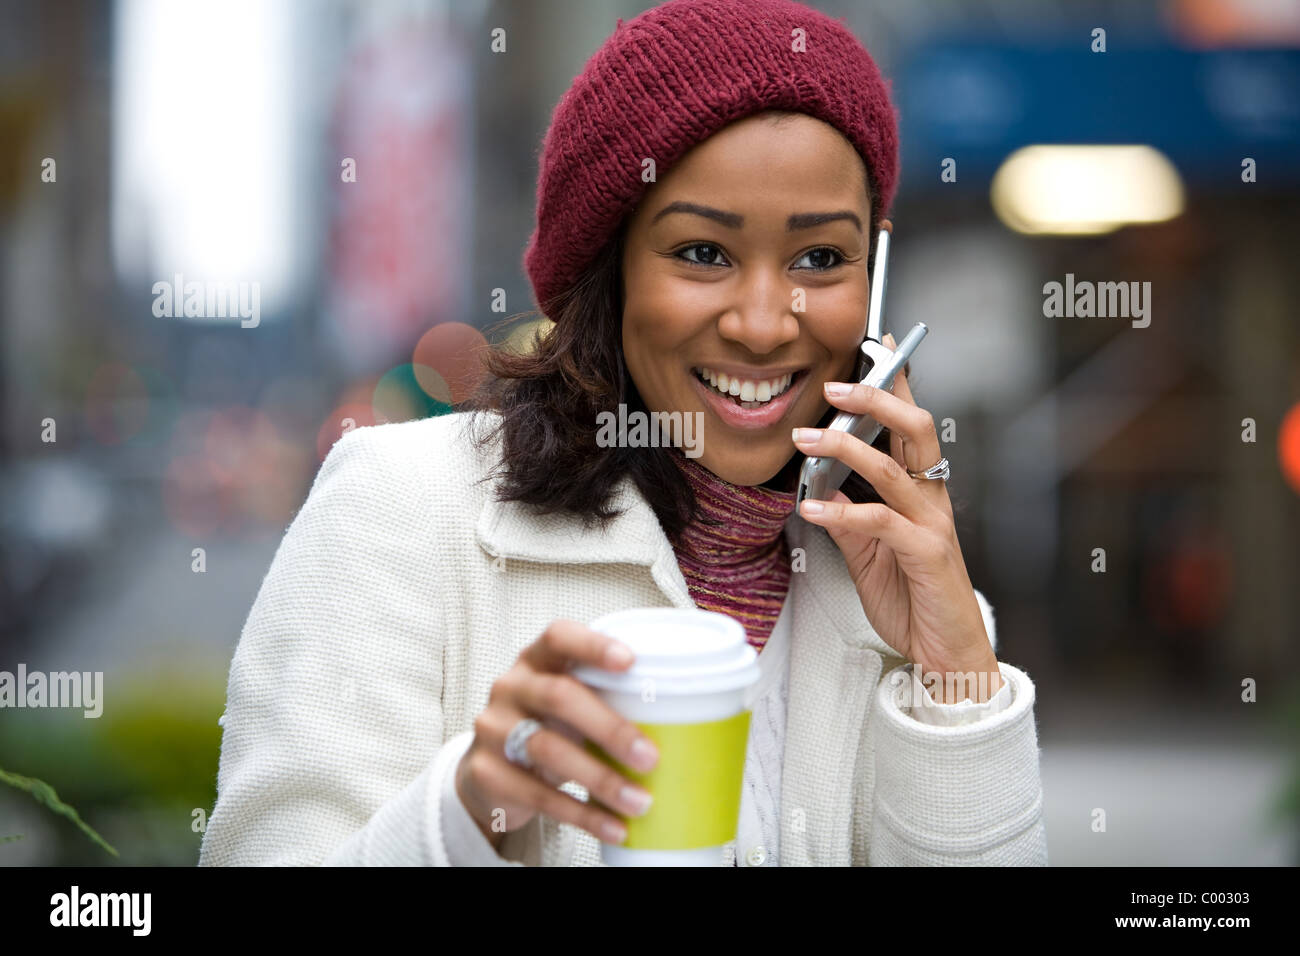 A modern business woman in the city talks on her cell phone while enjoying a cup of coffee. - Stock Image